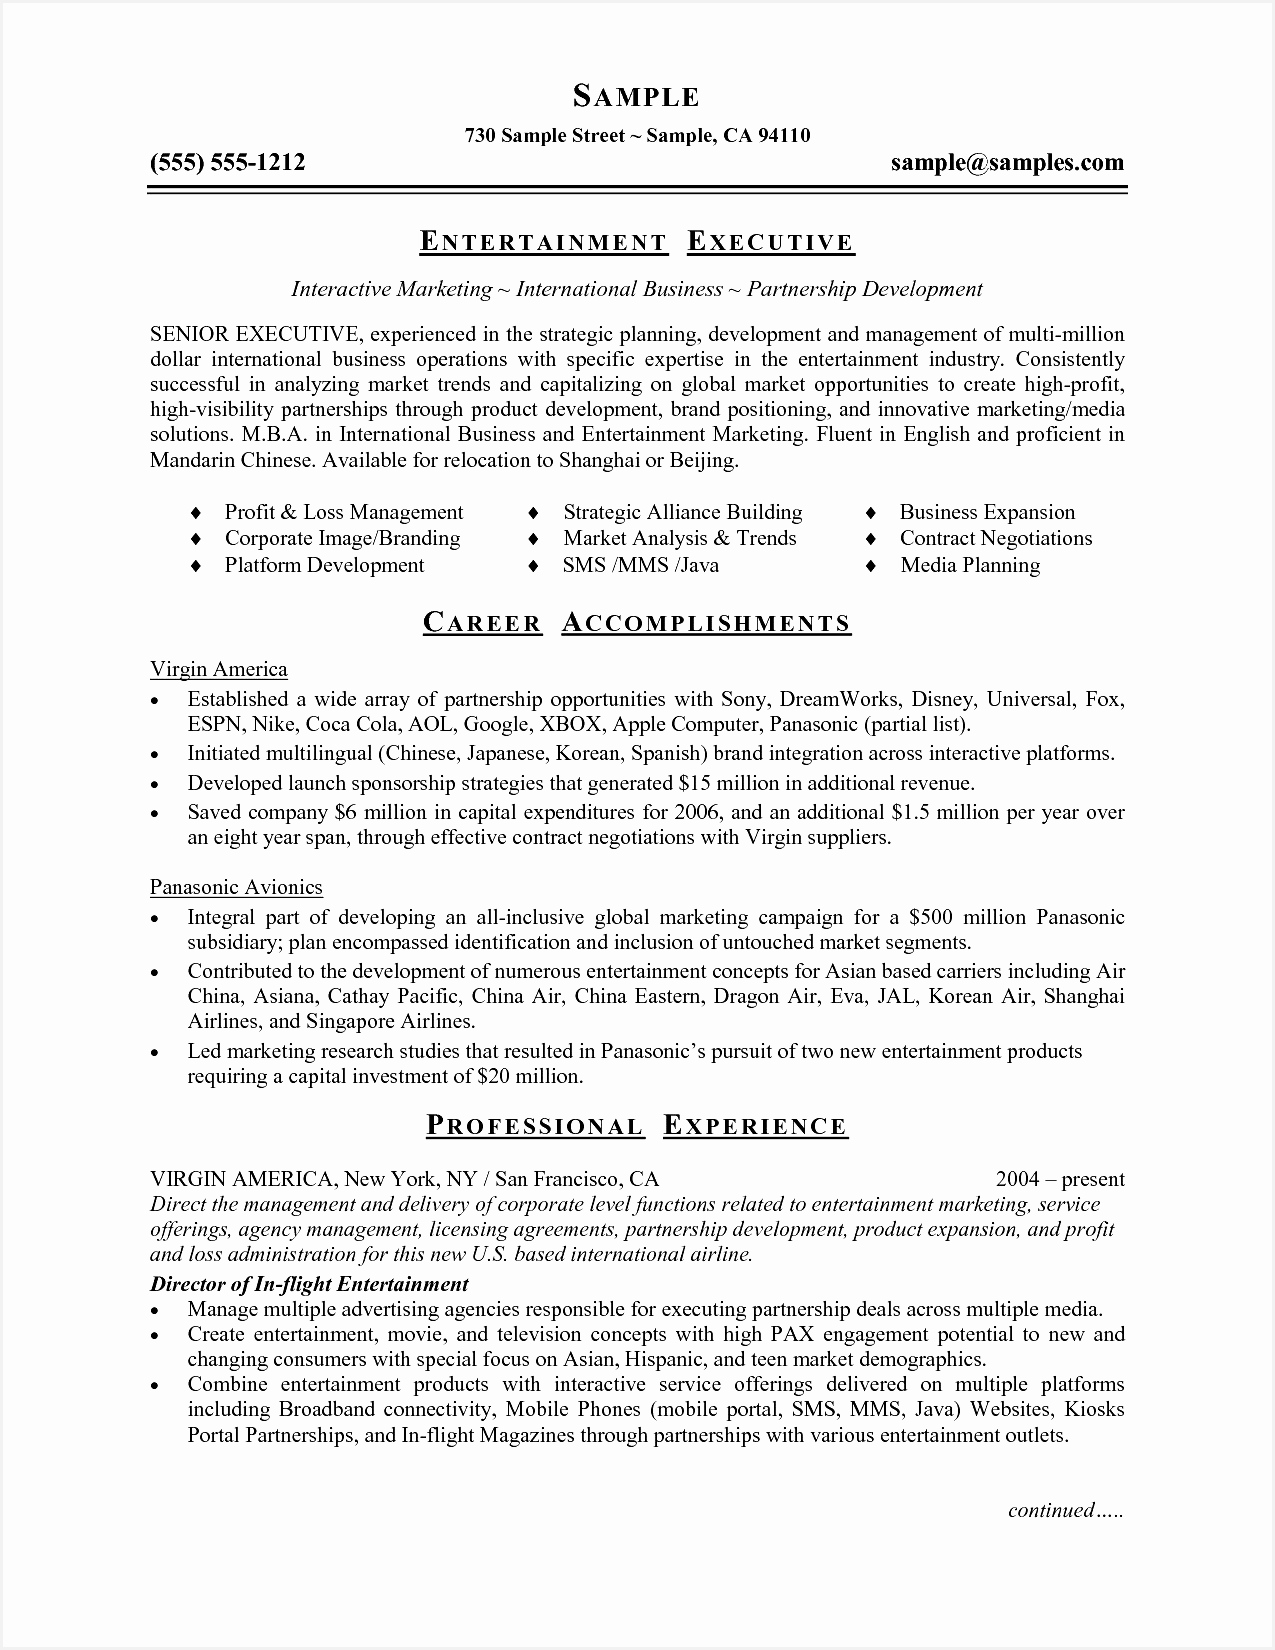 free resume template word fresh free professional resume template s luxury od specialist16501275